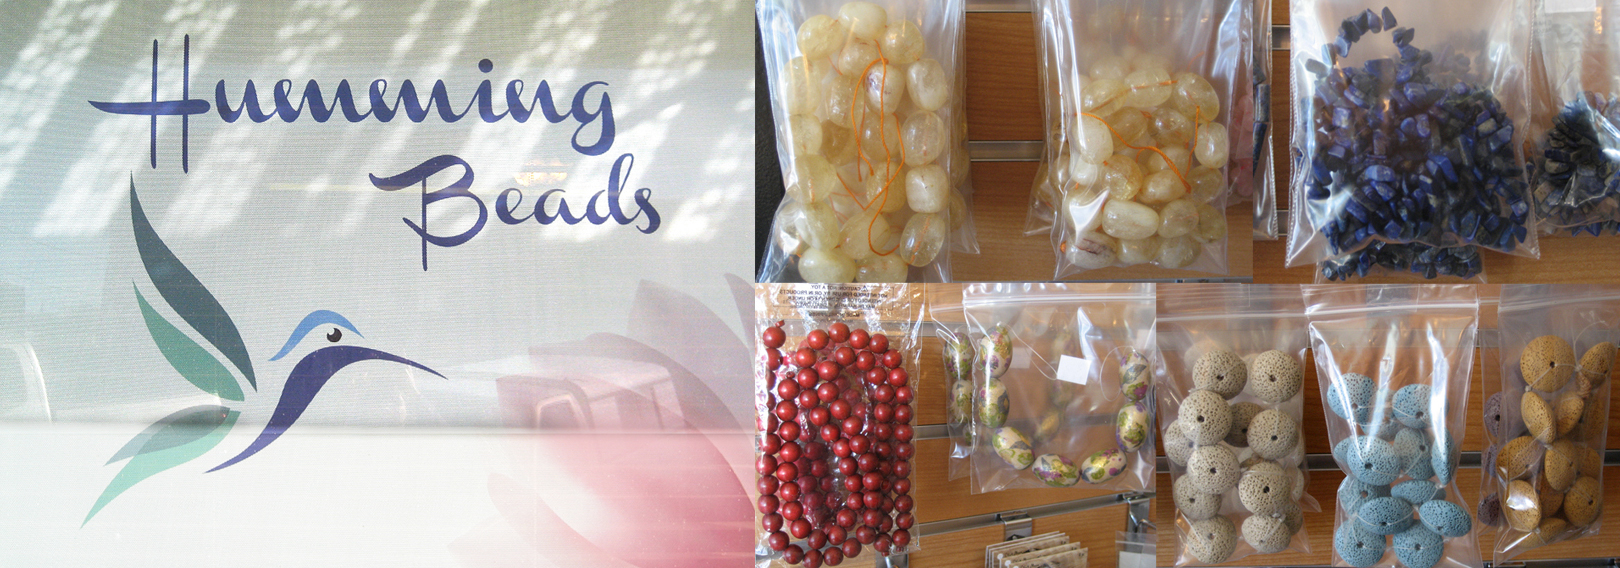 KMM-Humming-Beads-Bead-Store-Craft-Shop-Kingman-AZ-Business-sign-1